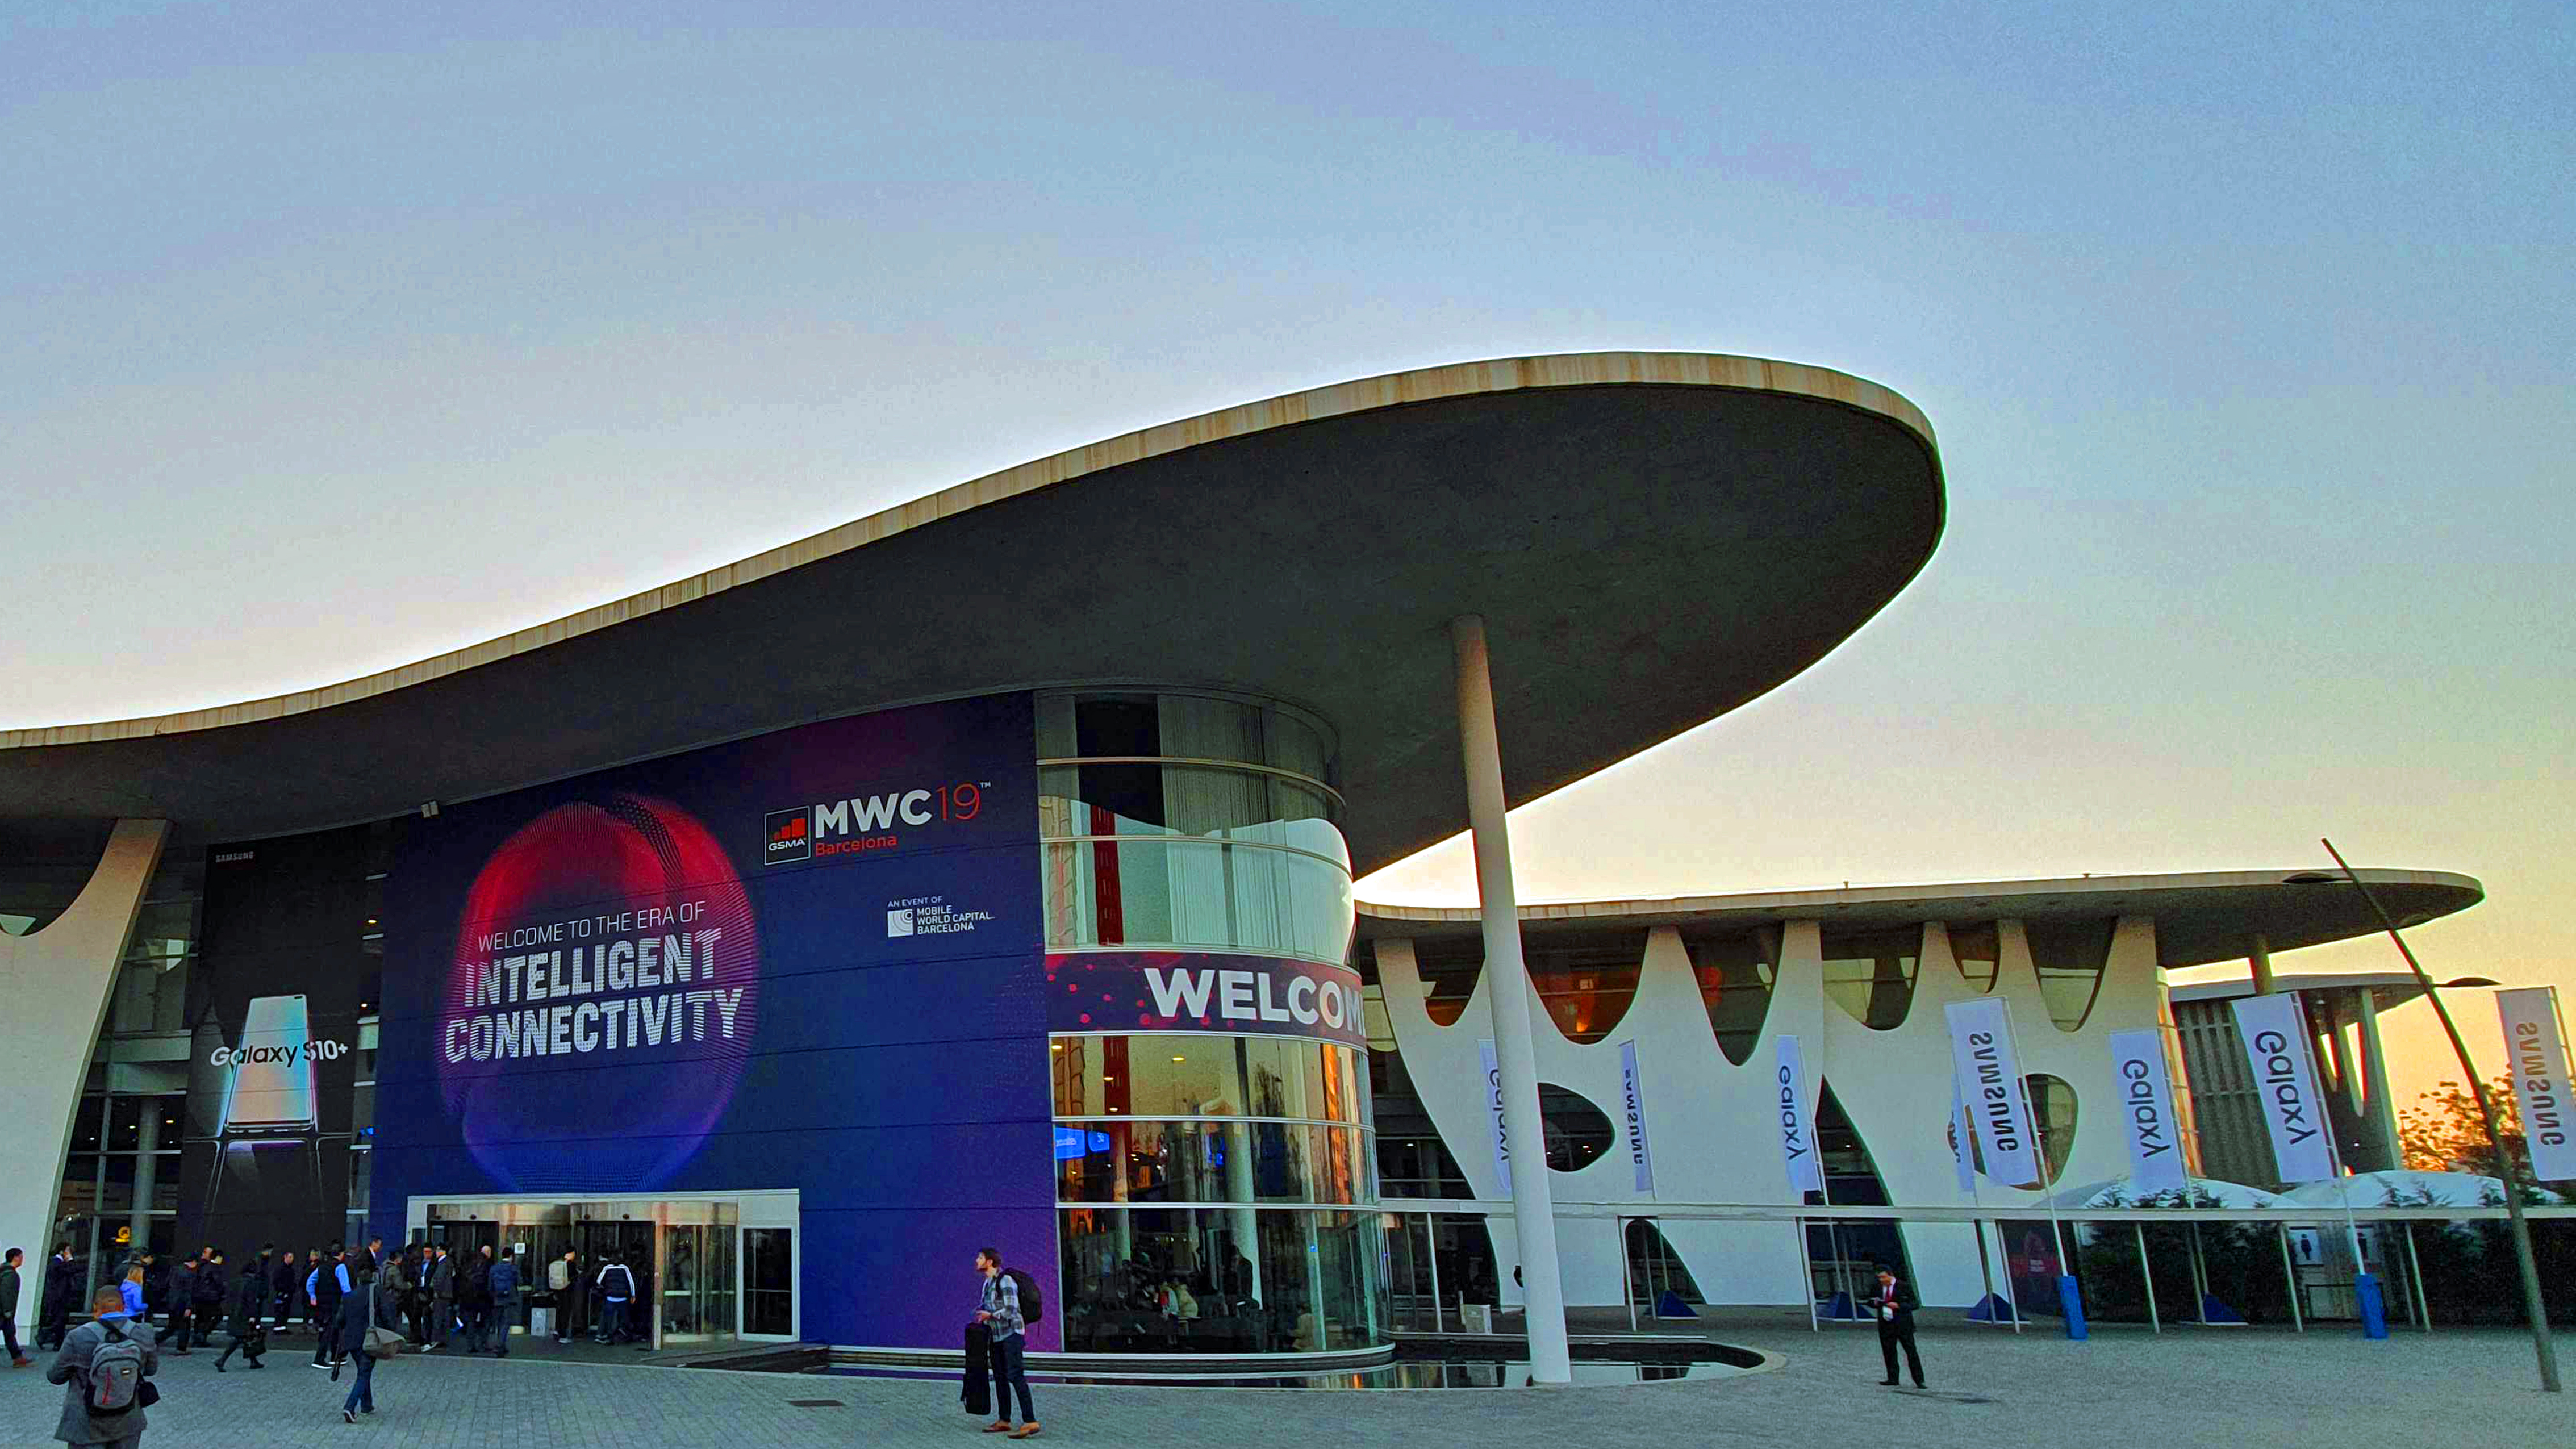 MWC 2019: all the news from the biggest mobile show of the year